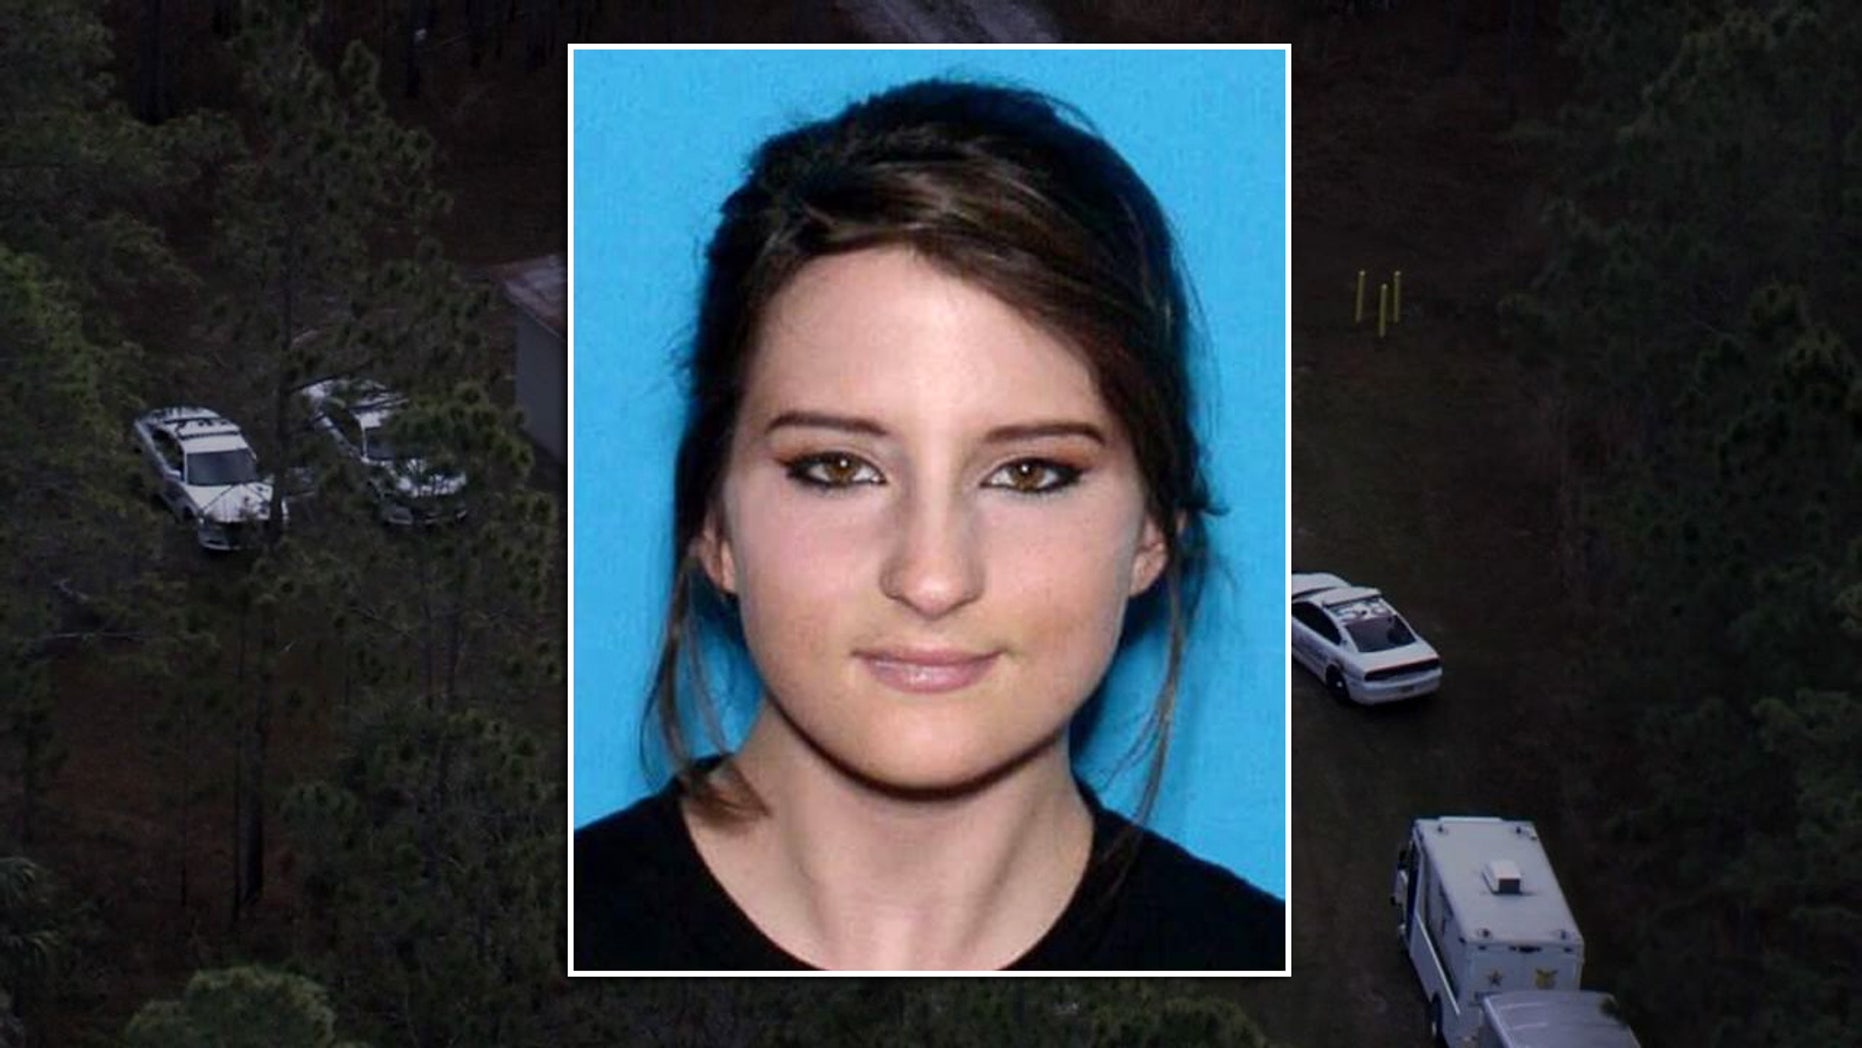 The body of Hailey Acierno was found in a wooded area in Flatwoods Park Friday morning. (FOX 13)